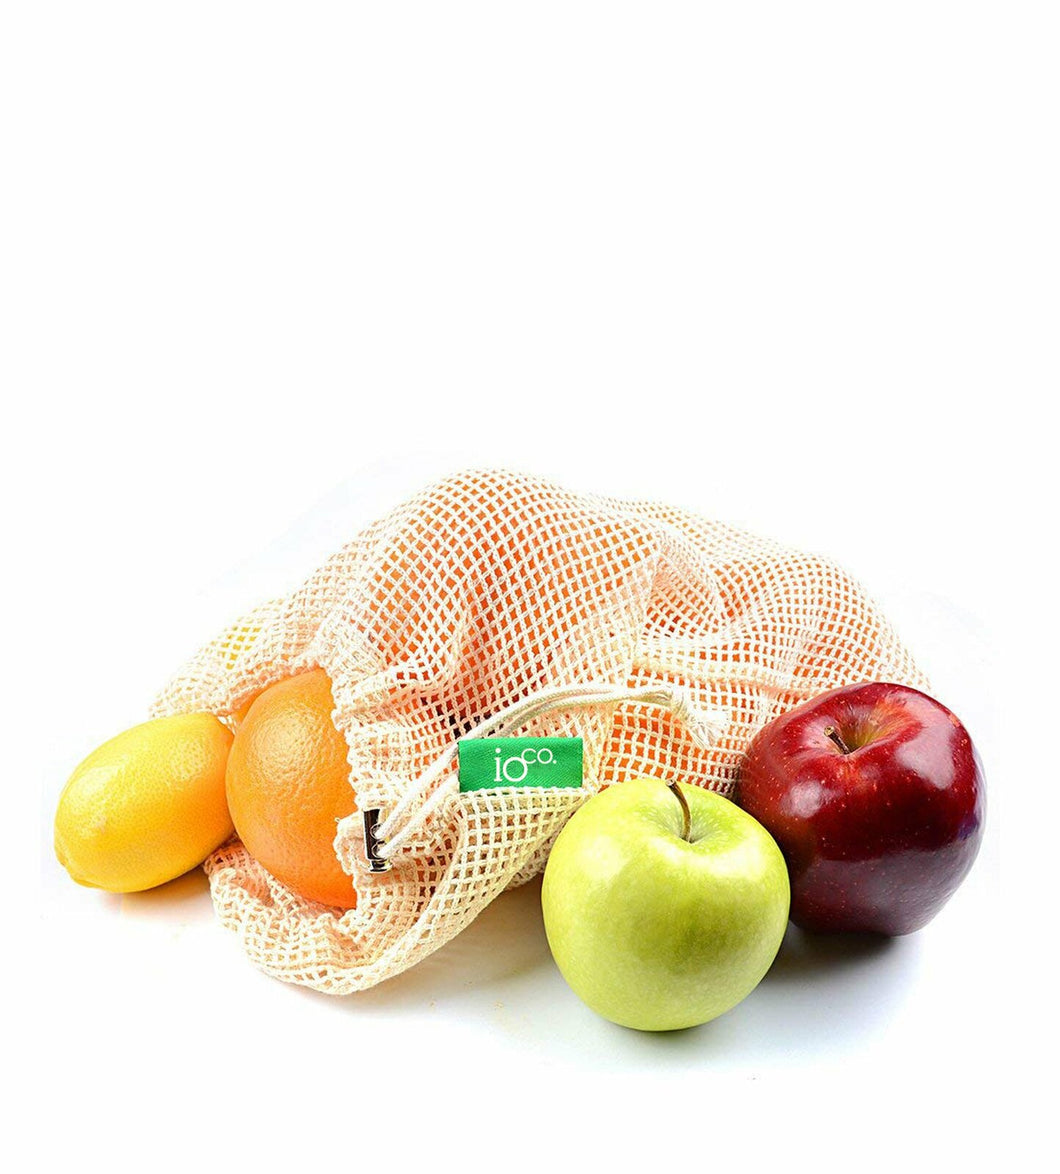 IOco Natural Unbleached Cotton Food Bags - 6 pack